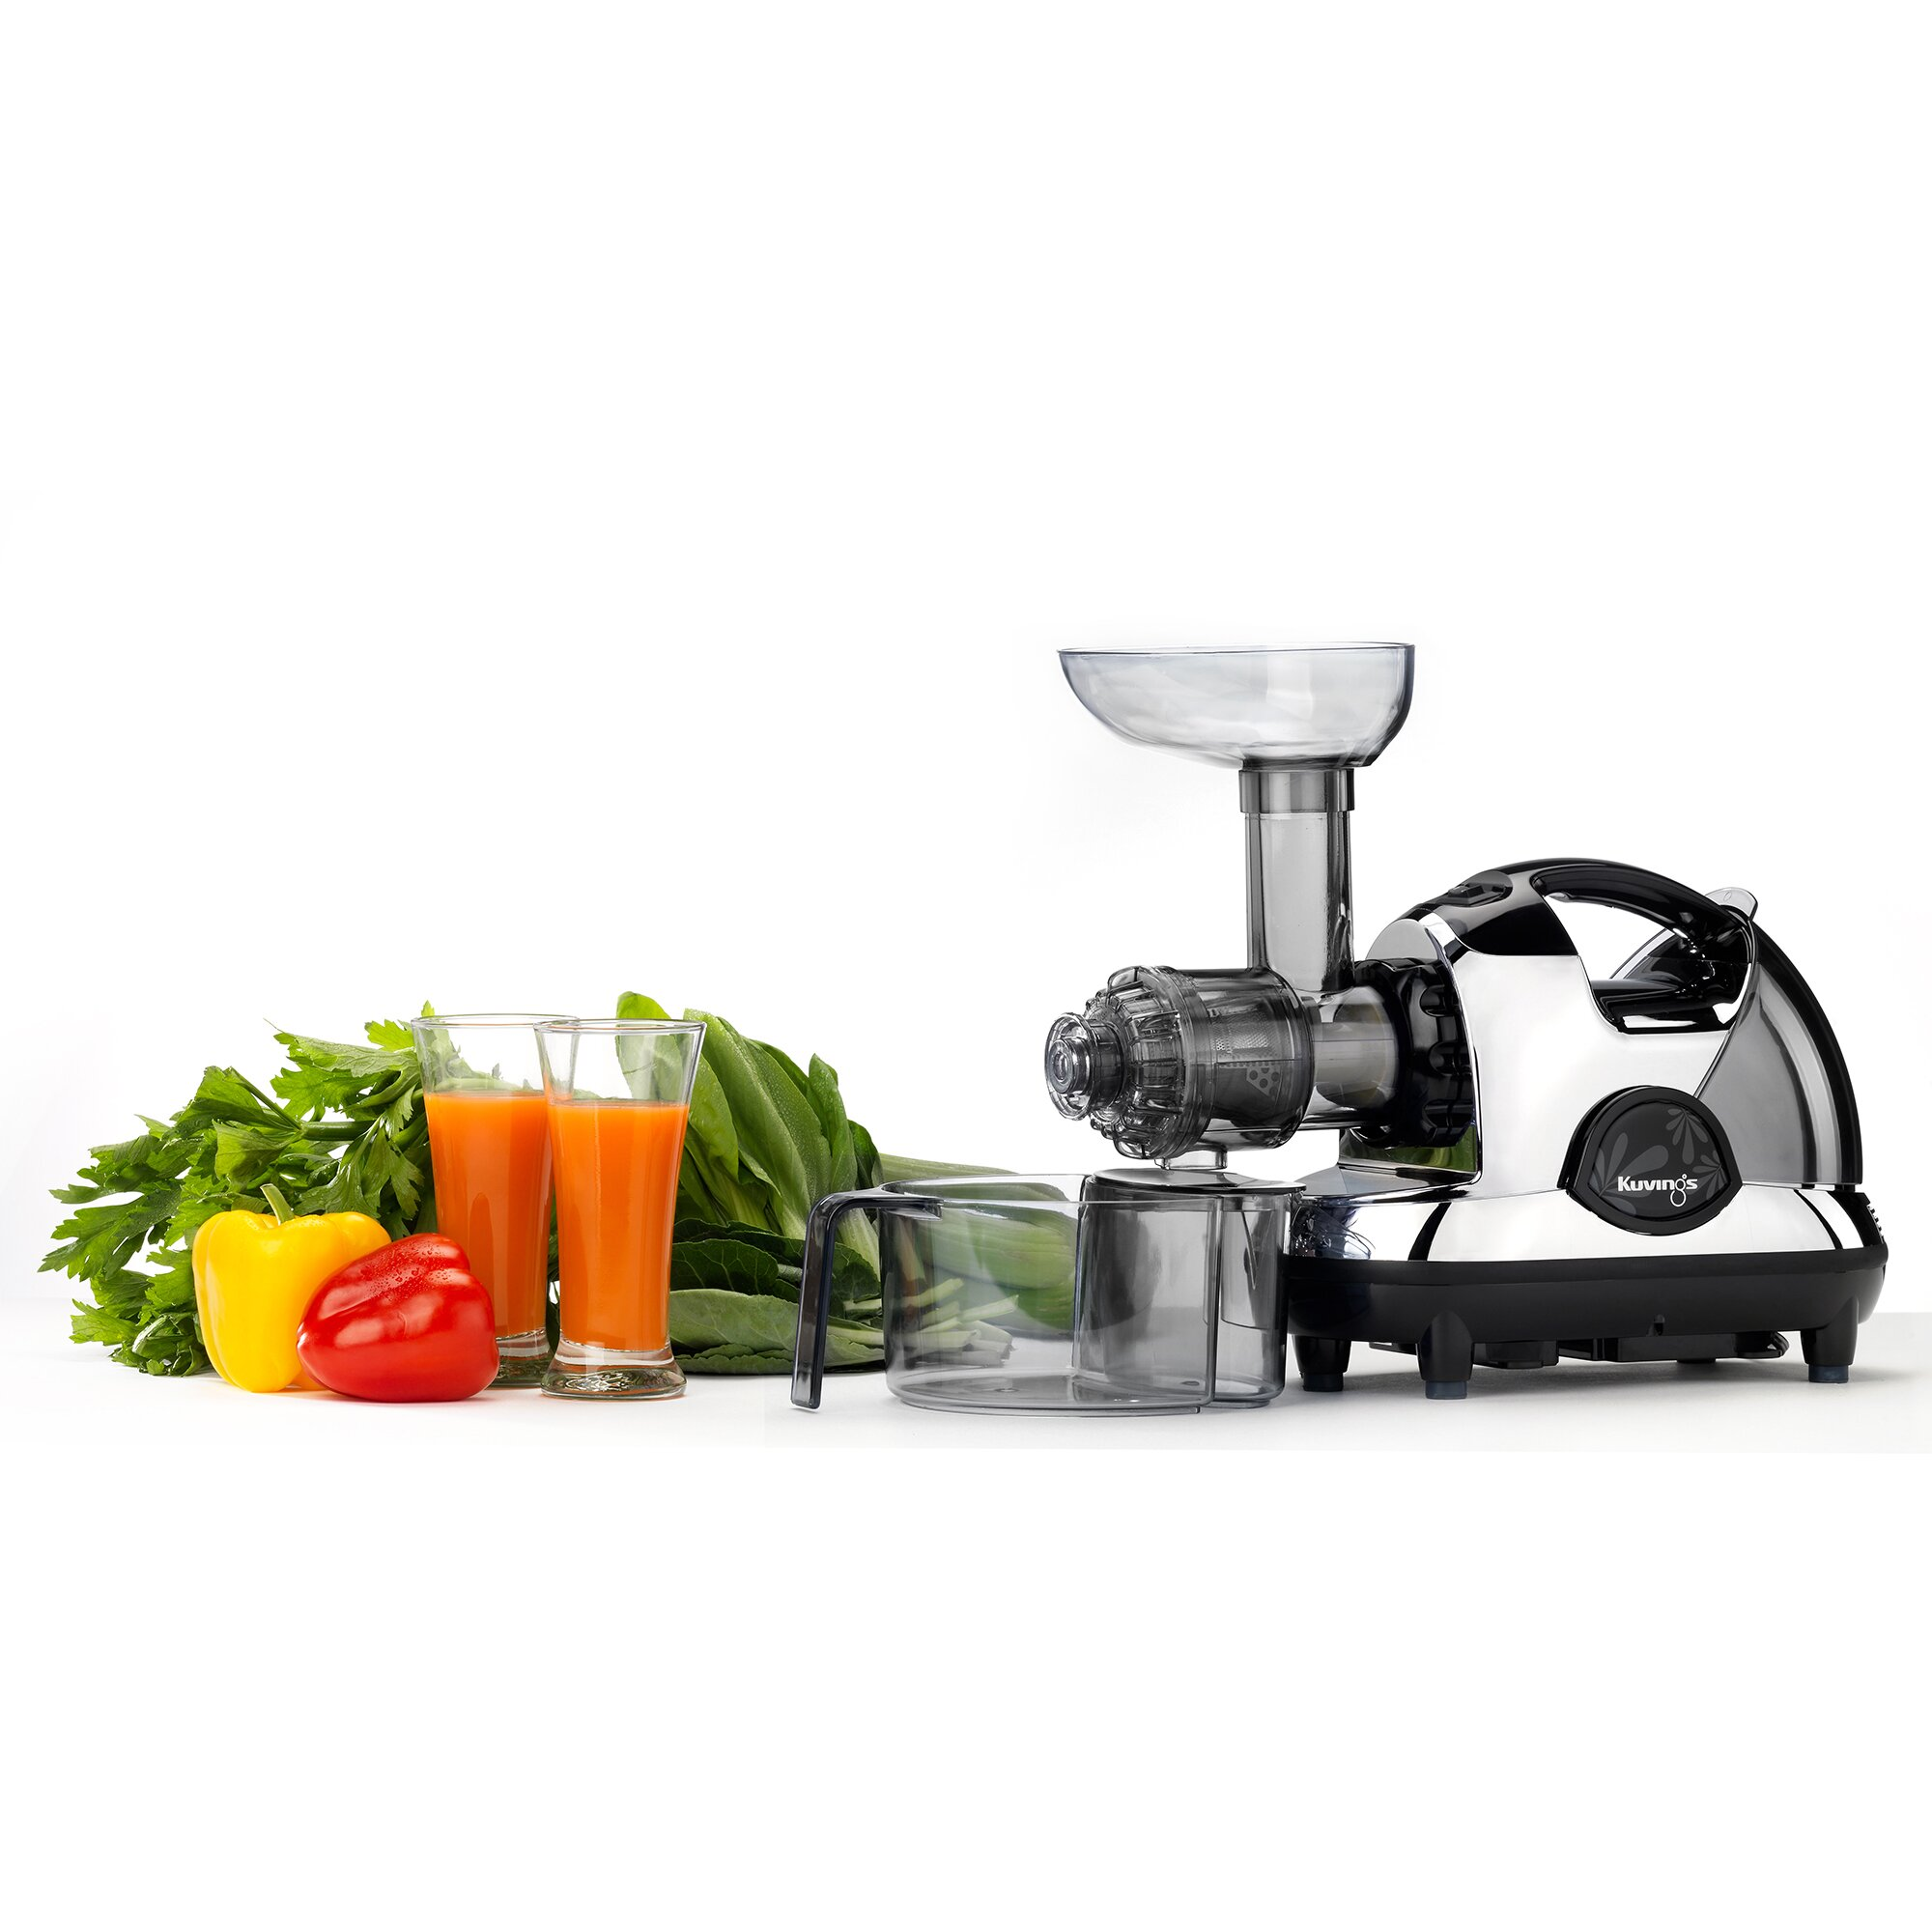 Kuvings Masticating Slow Juicer Reviews : KUvINGS Masticating Slow Juicer & Reviews Wayfair